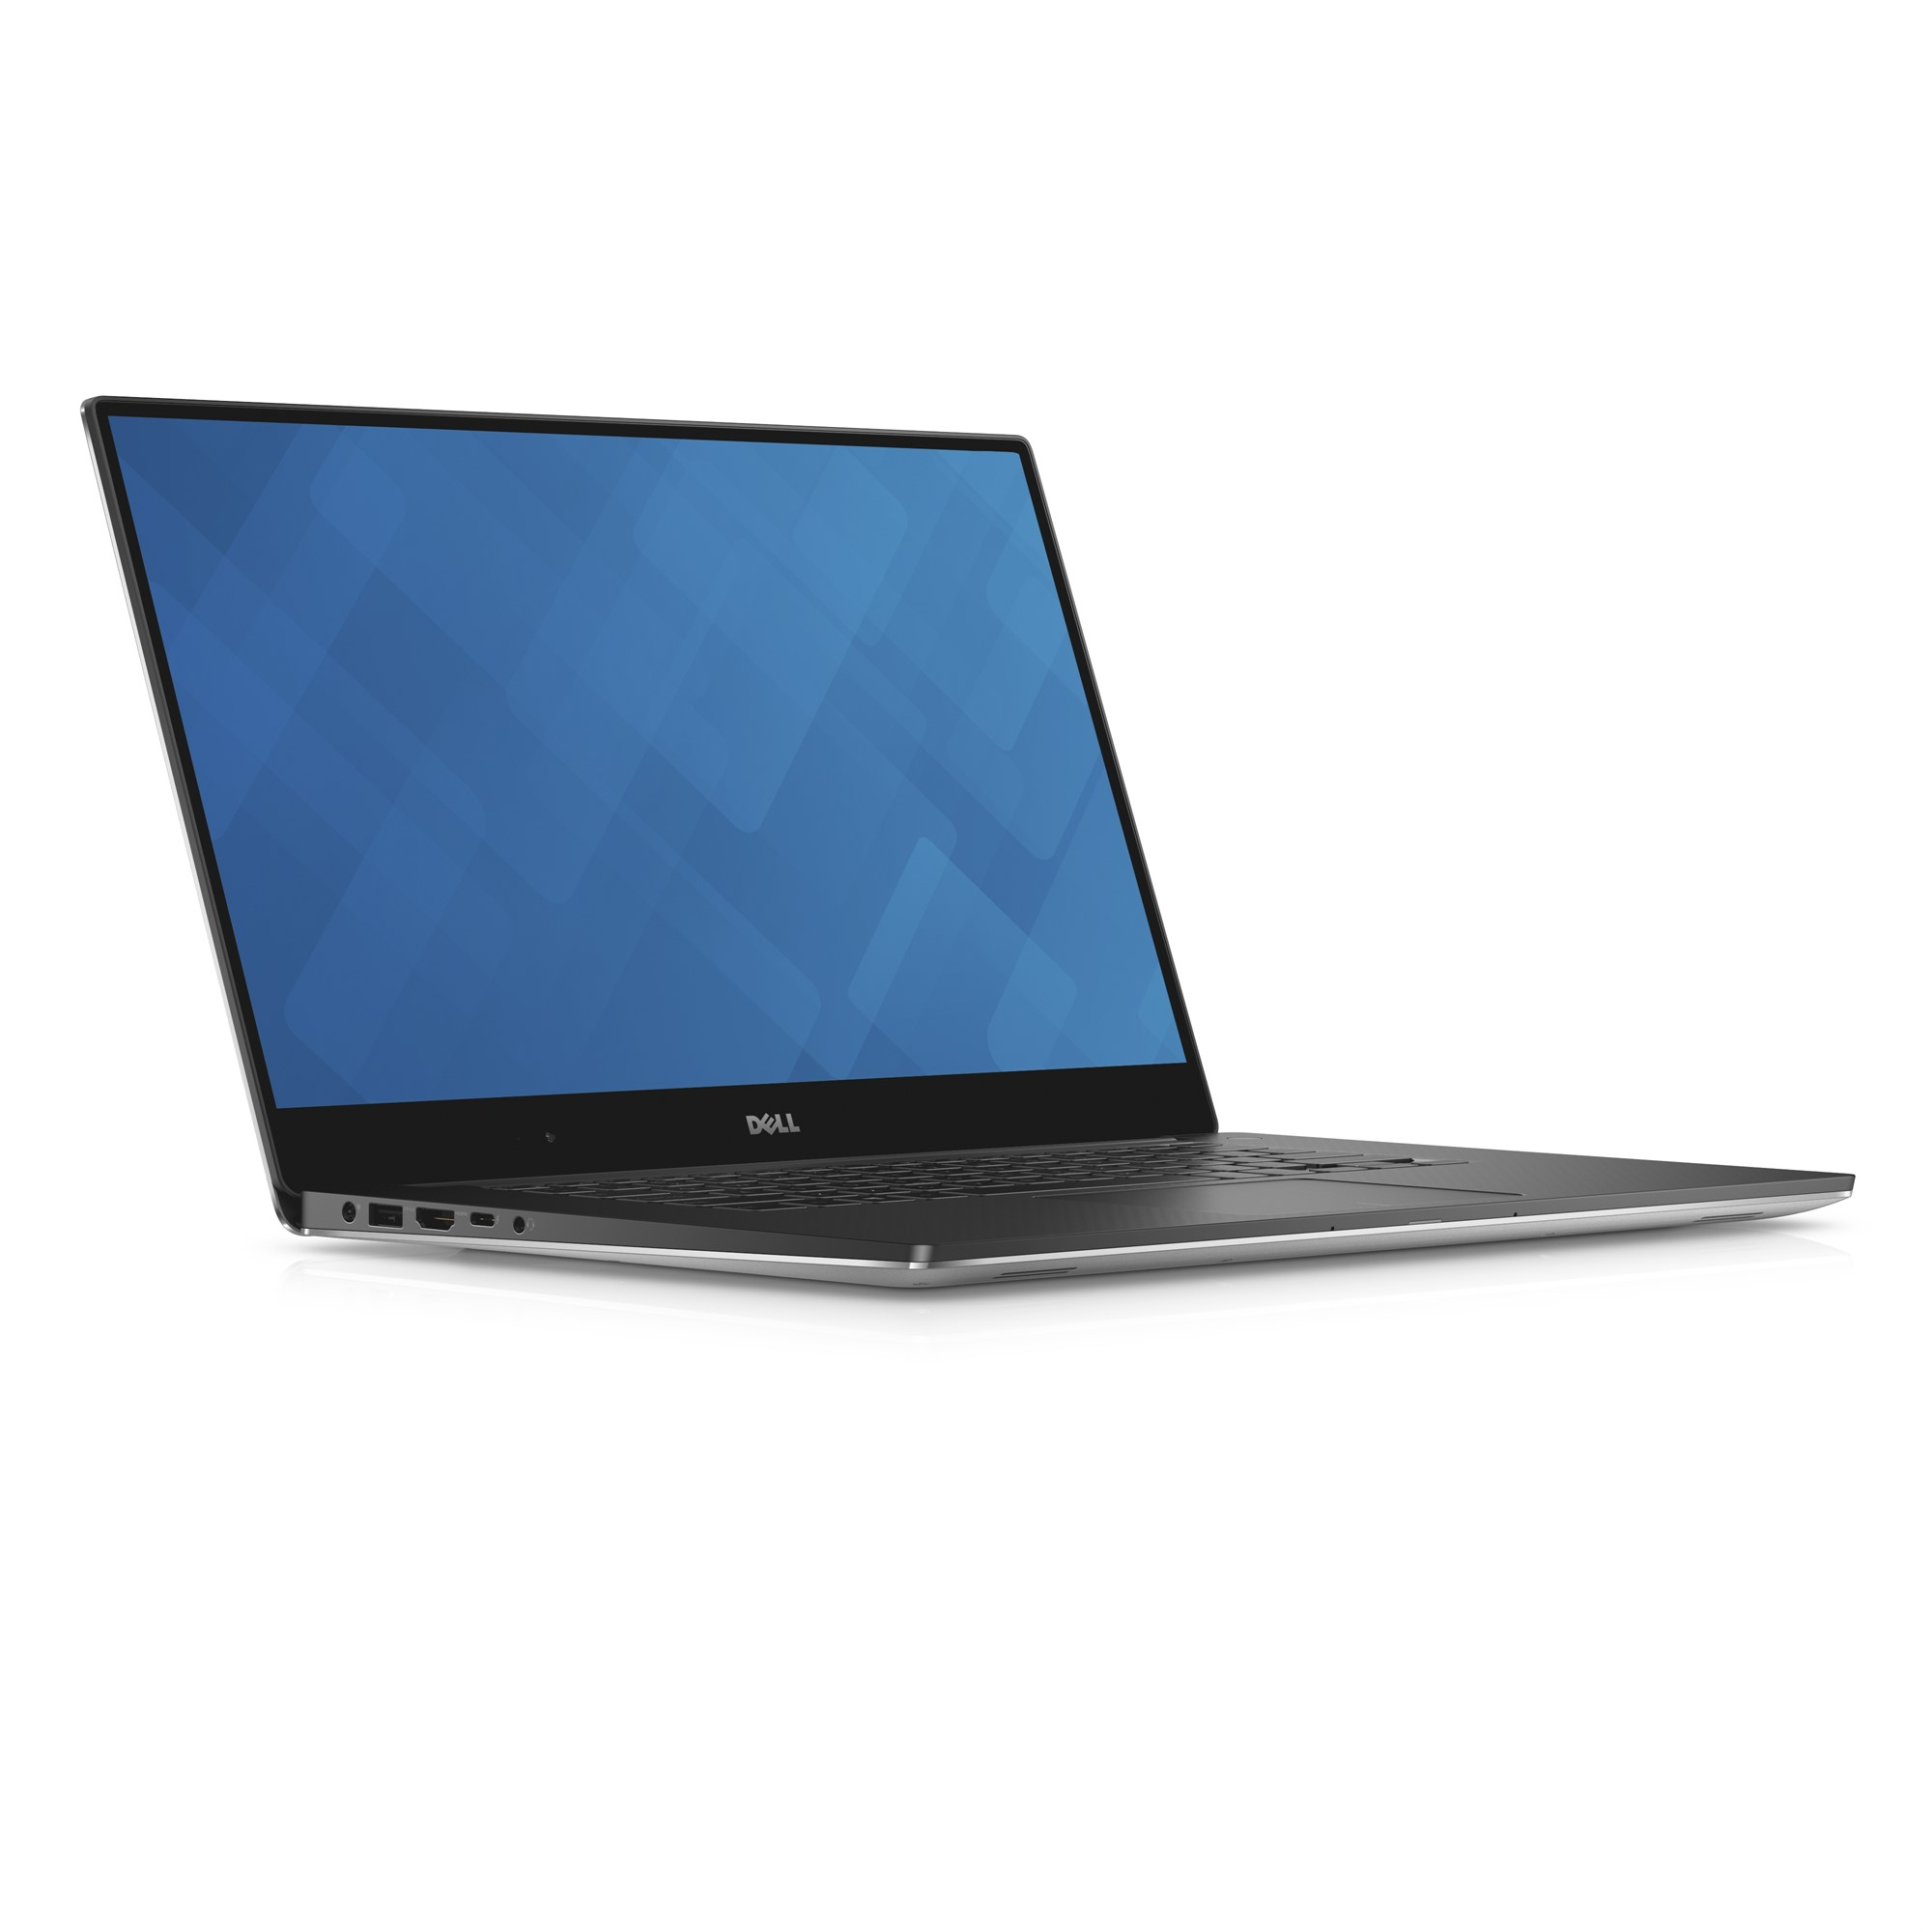 DELL XPS 15 9560 2.8GHZ I7-7700HQ 15.6